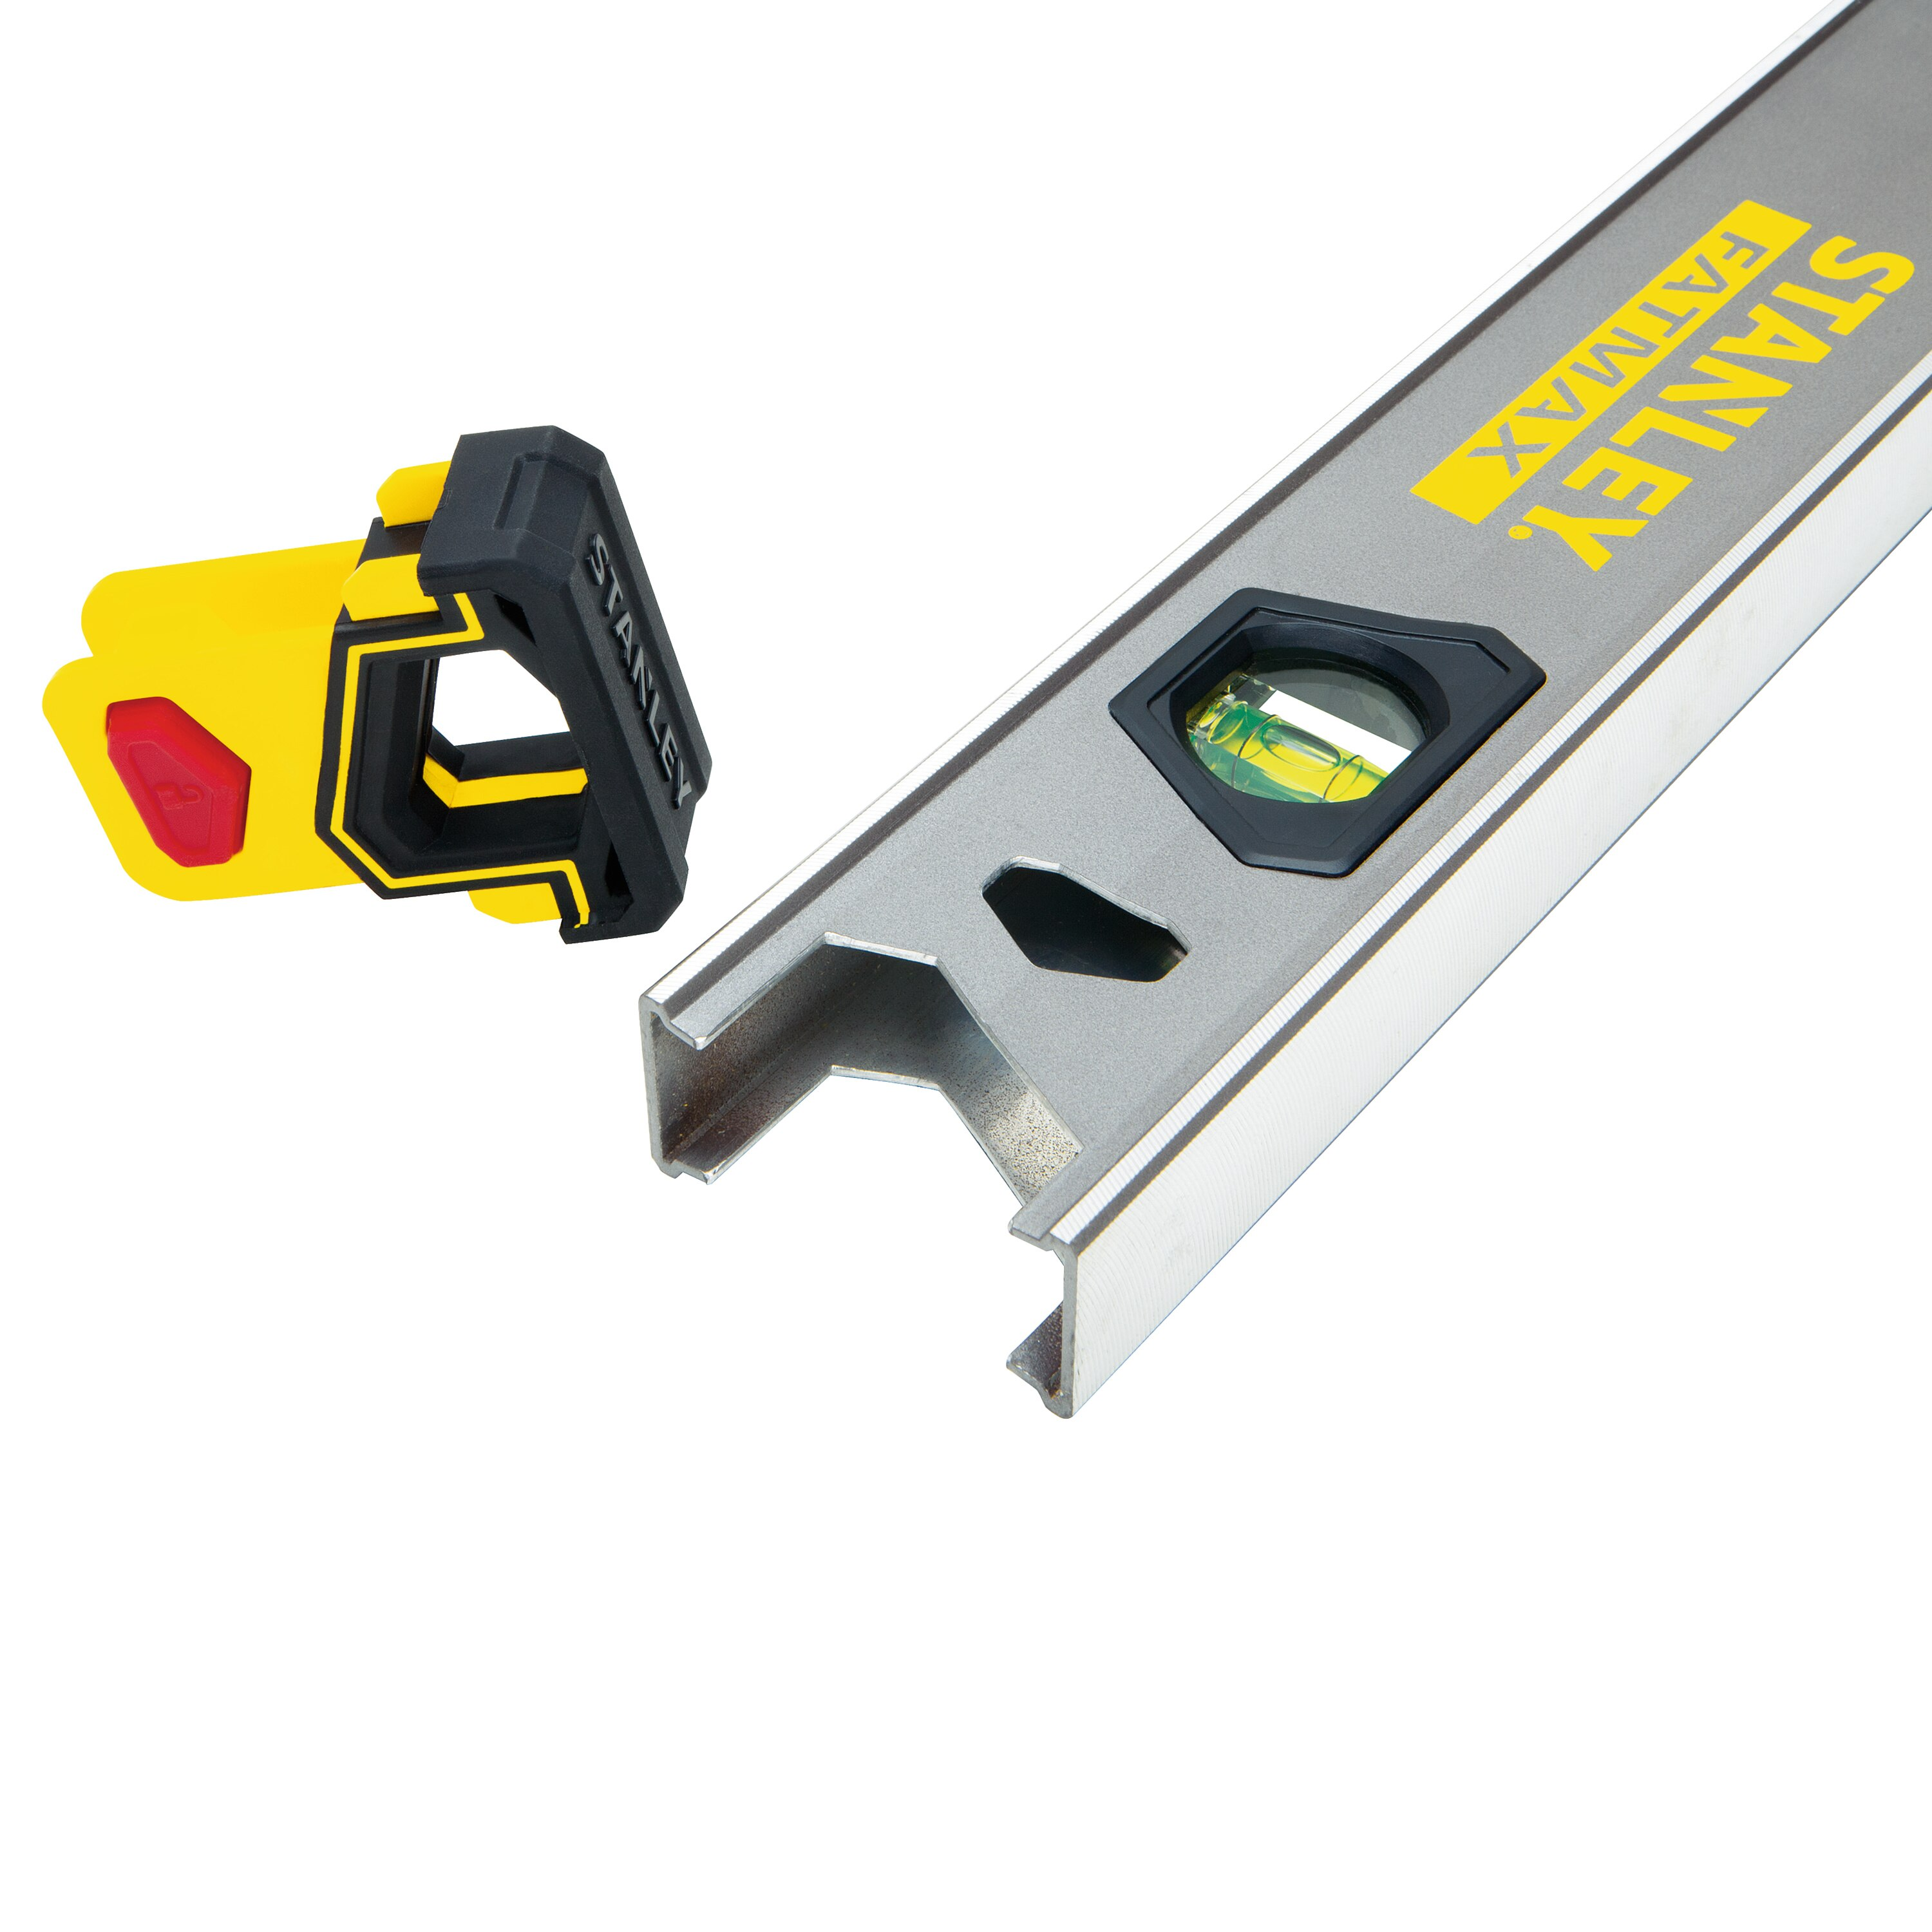 Stanley Tools - 48 in FATMAX Premium Box Beam with Hook - FMHT42400